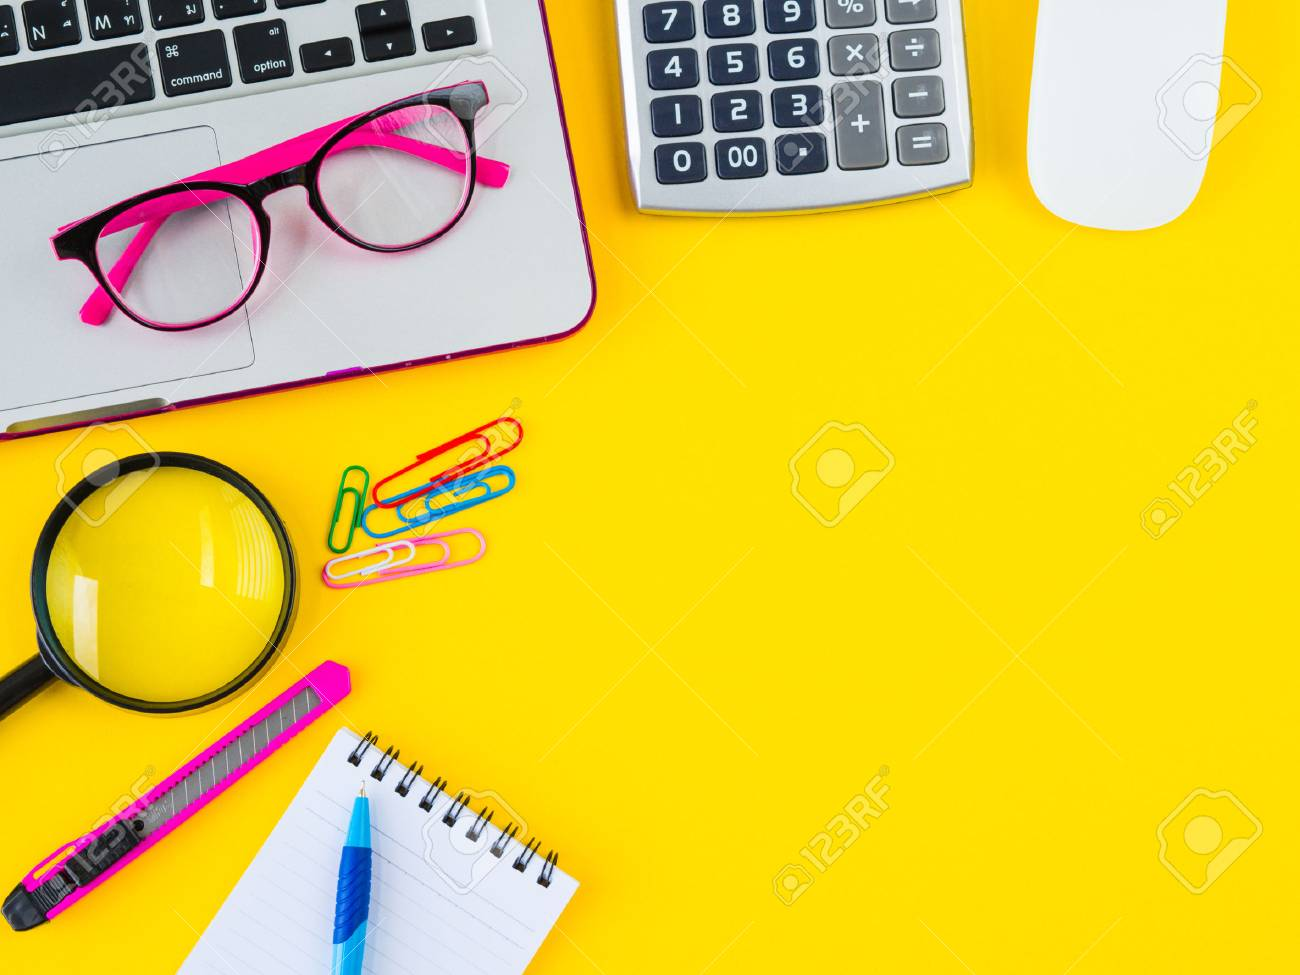 Flat lay top view office table stock photo (edit now) 663899290.